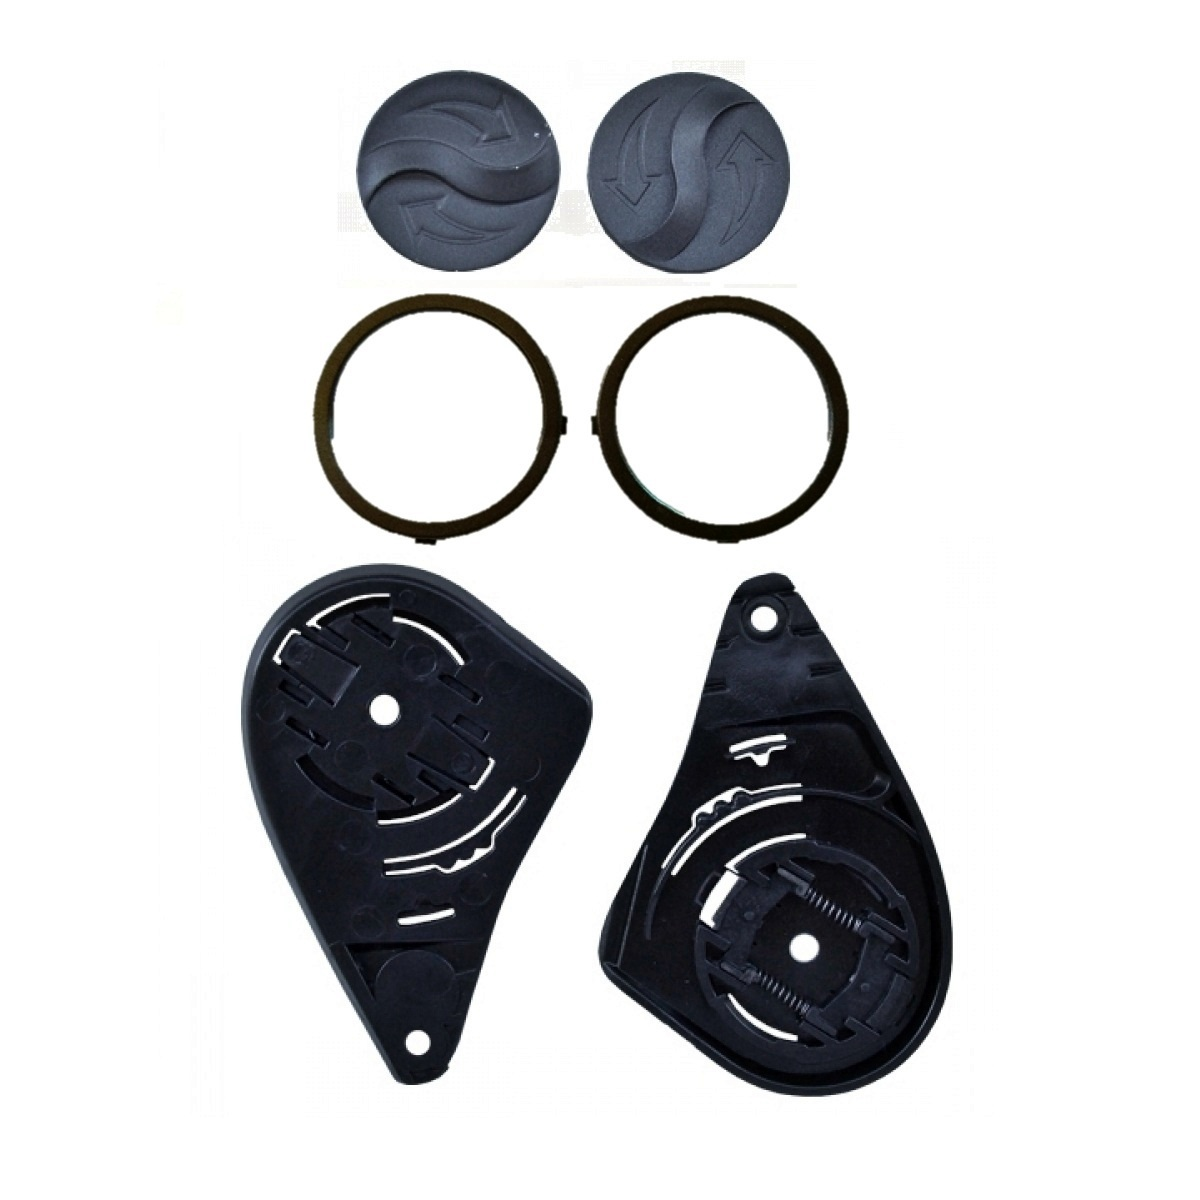 Kit Reparo Viseira Capacete Helt 956 Maximum Original